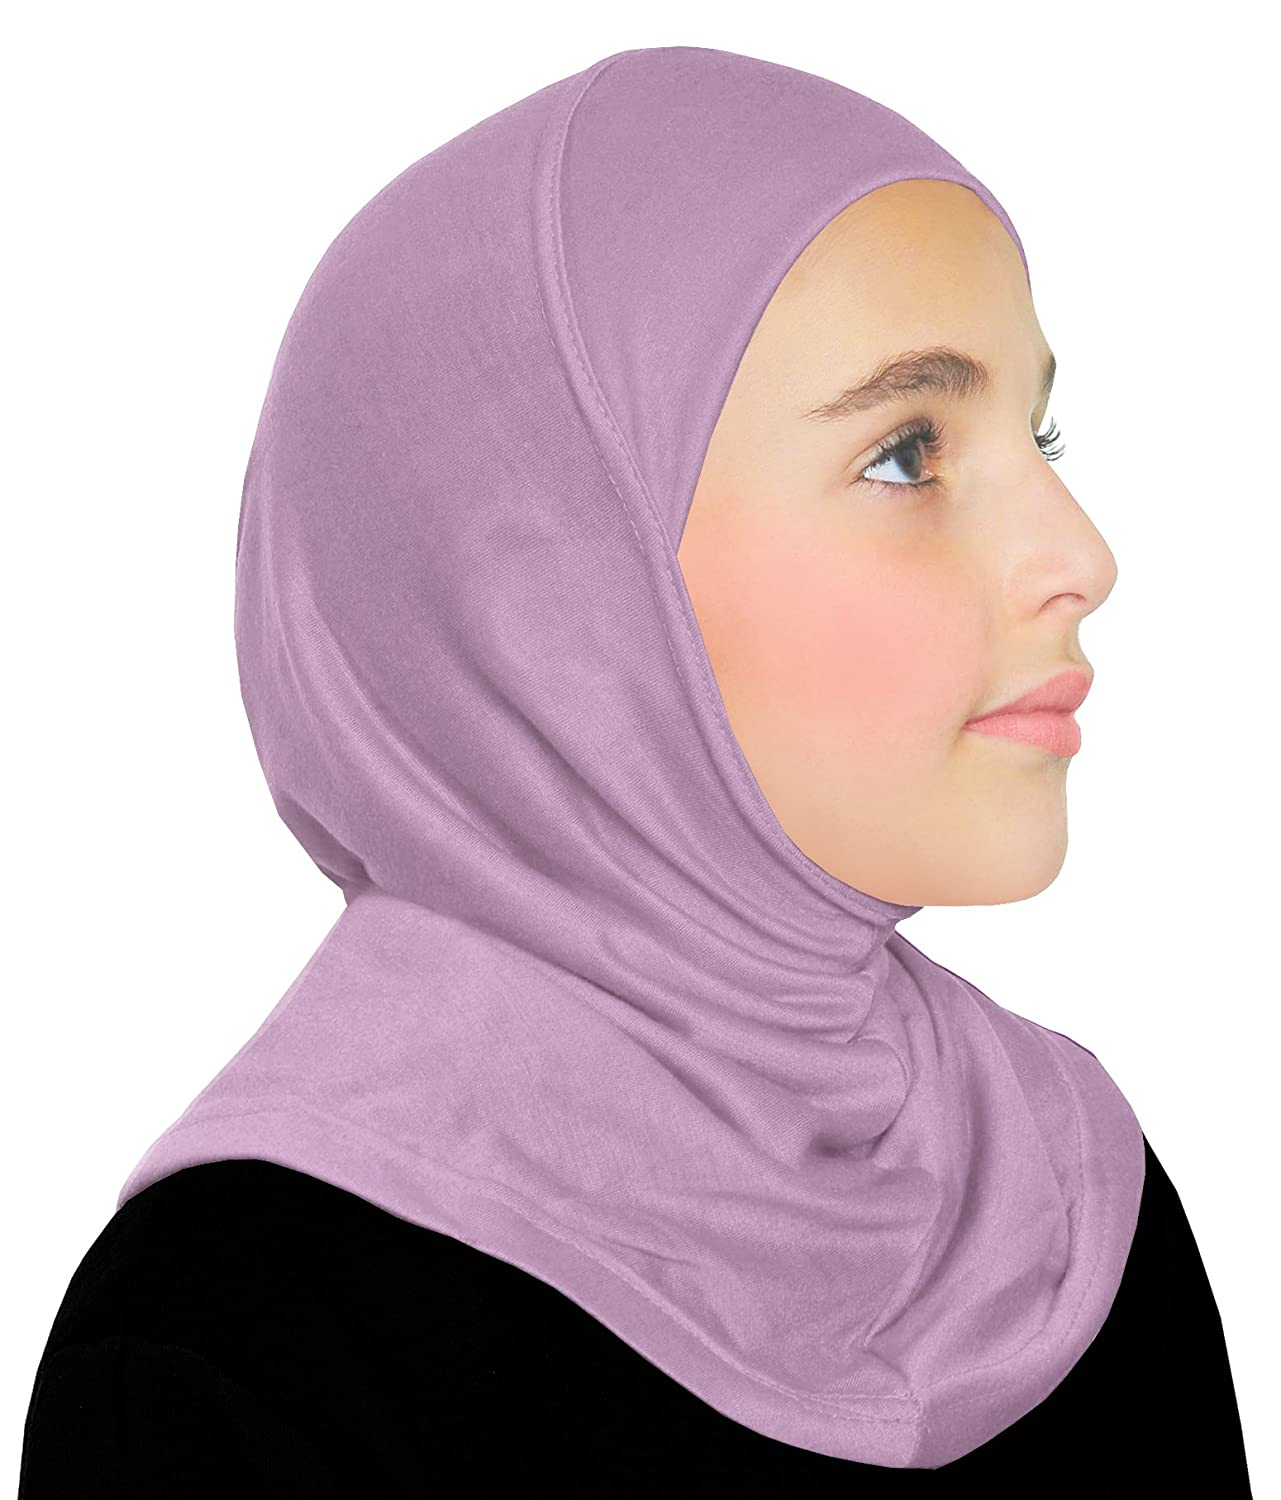 Girl's Hijab Cotton 1 piece Amira Headscarf